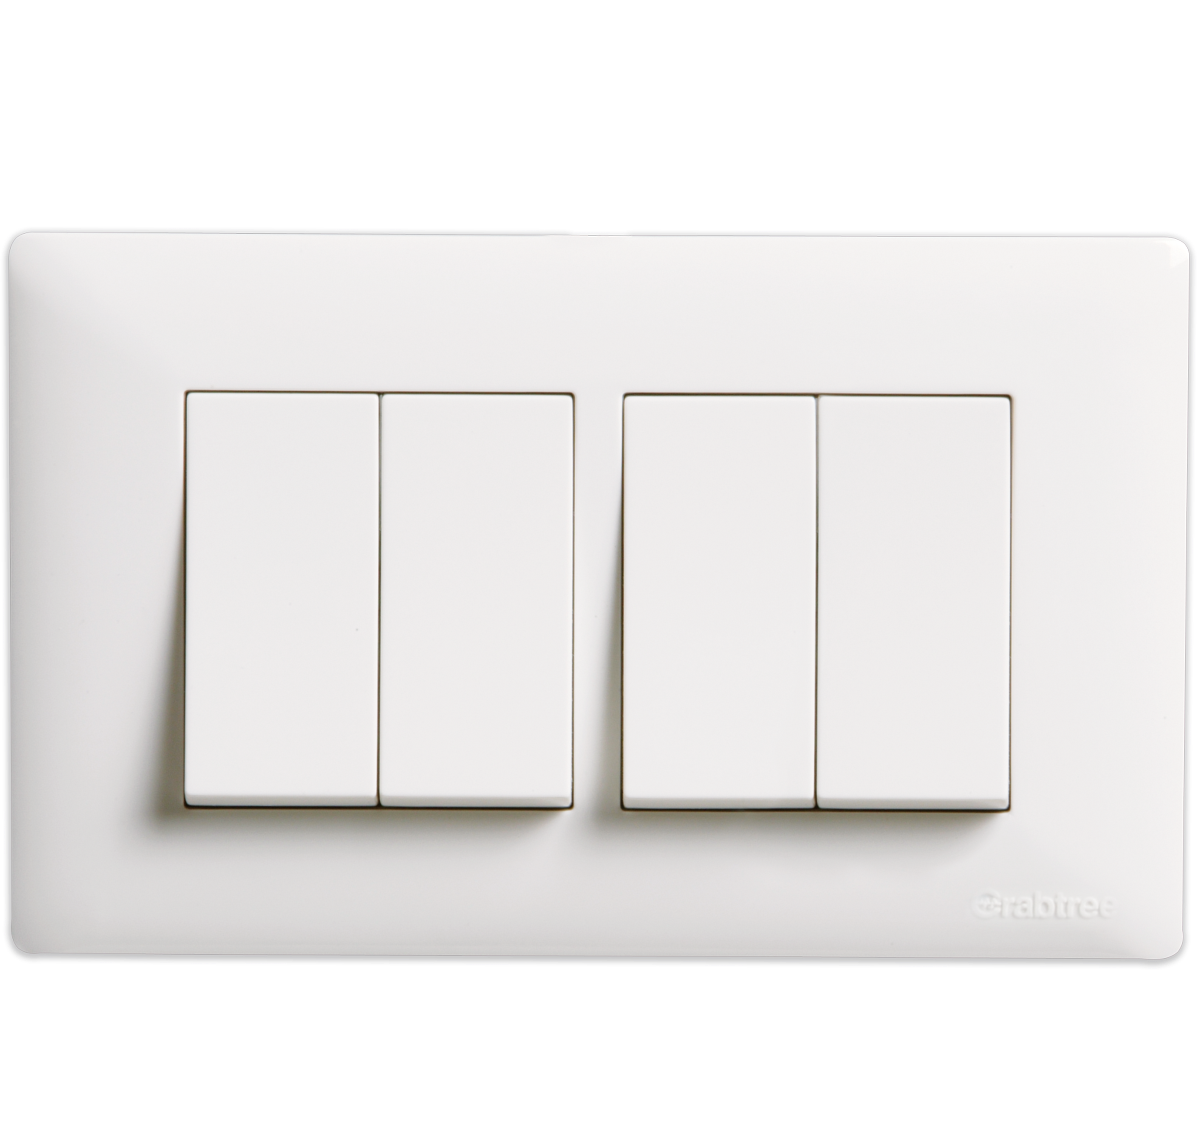 Crabtree India - Cover Frames, Wall Plates Online - Crabtree India